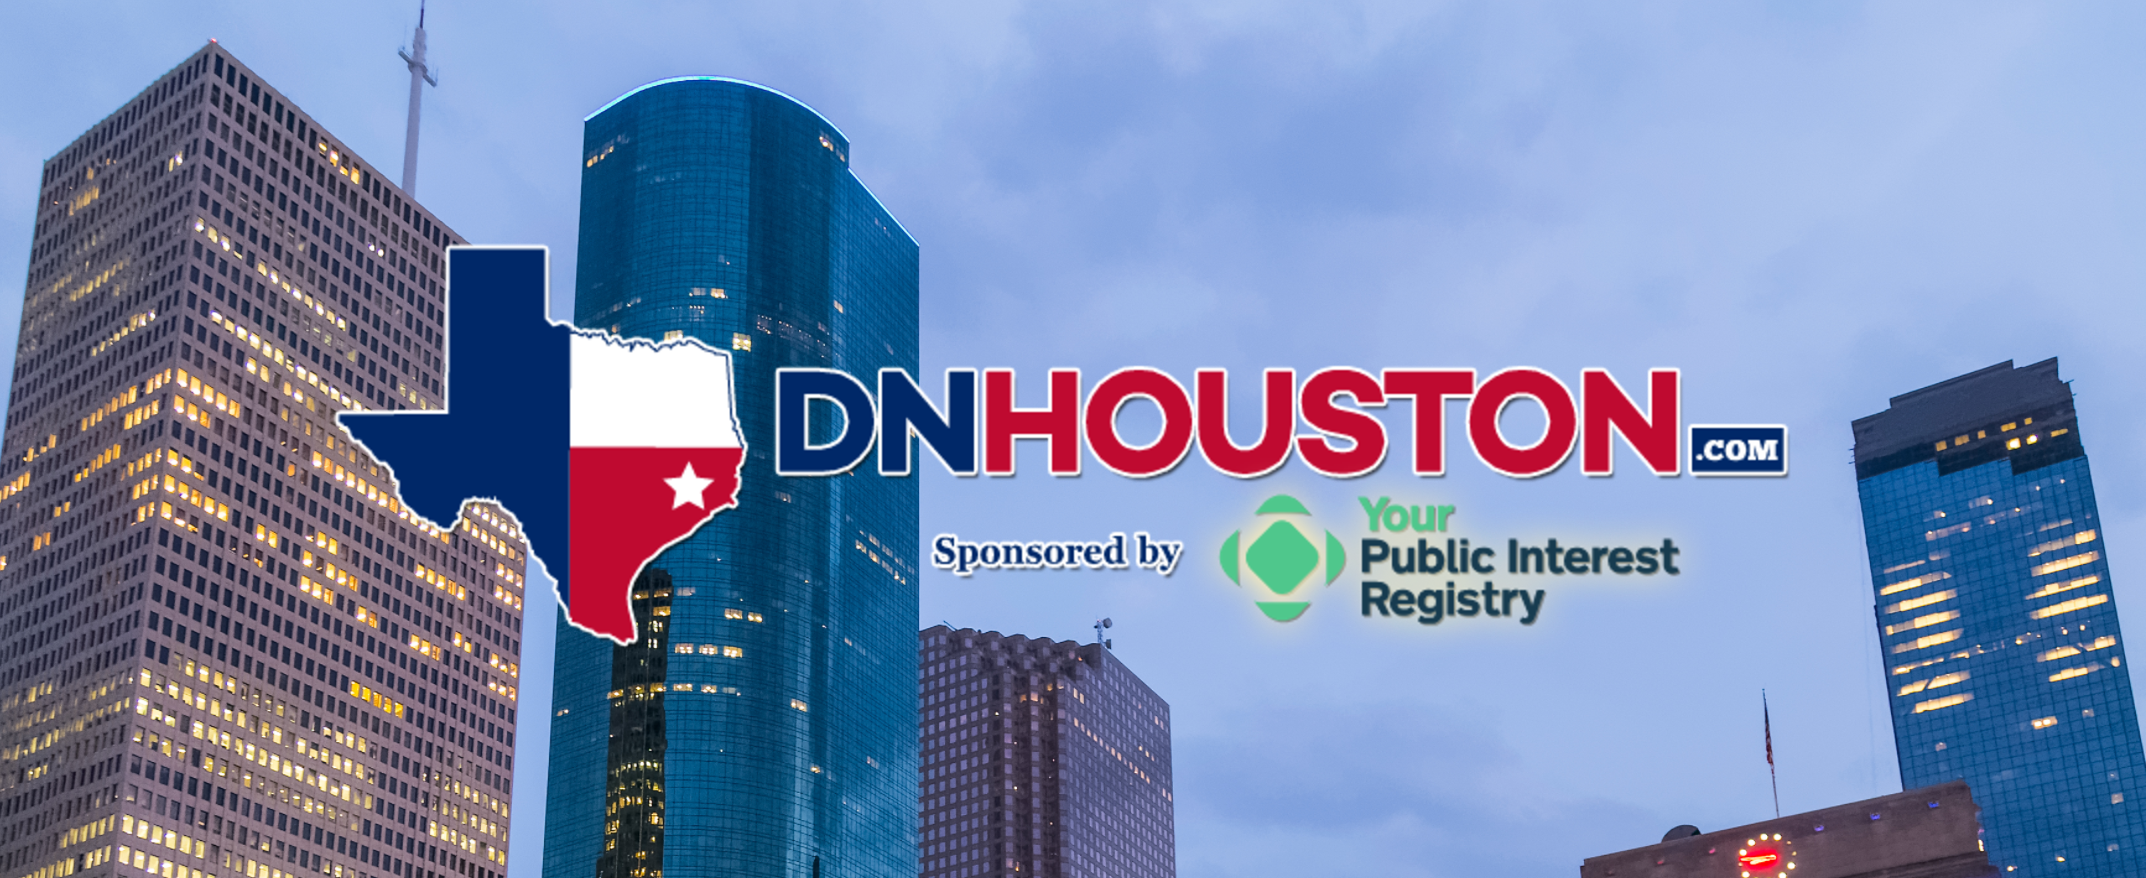 DNHouston Meetup